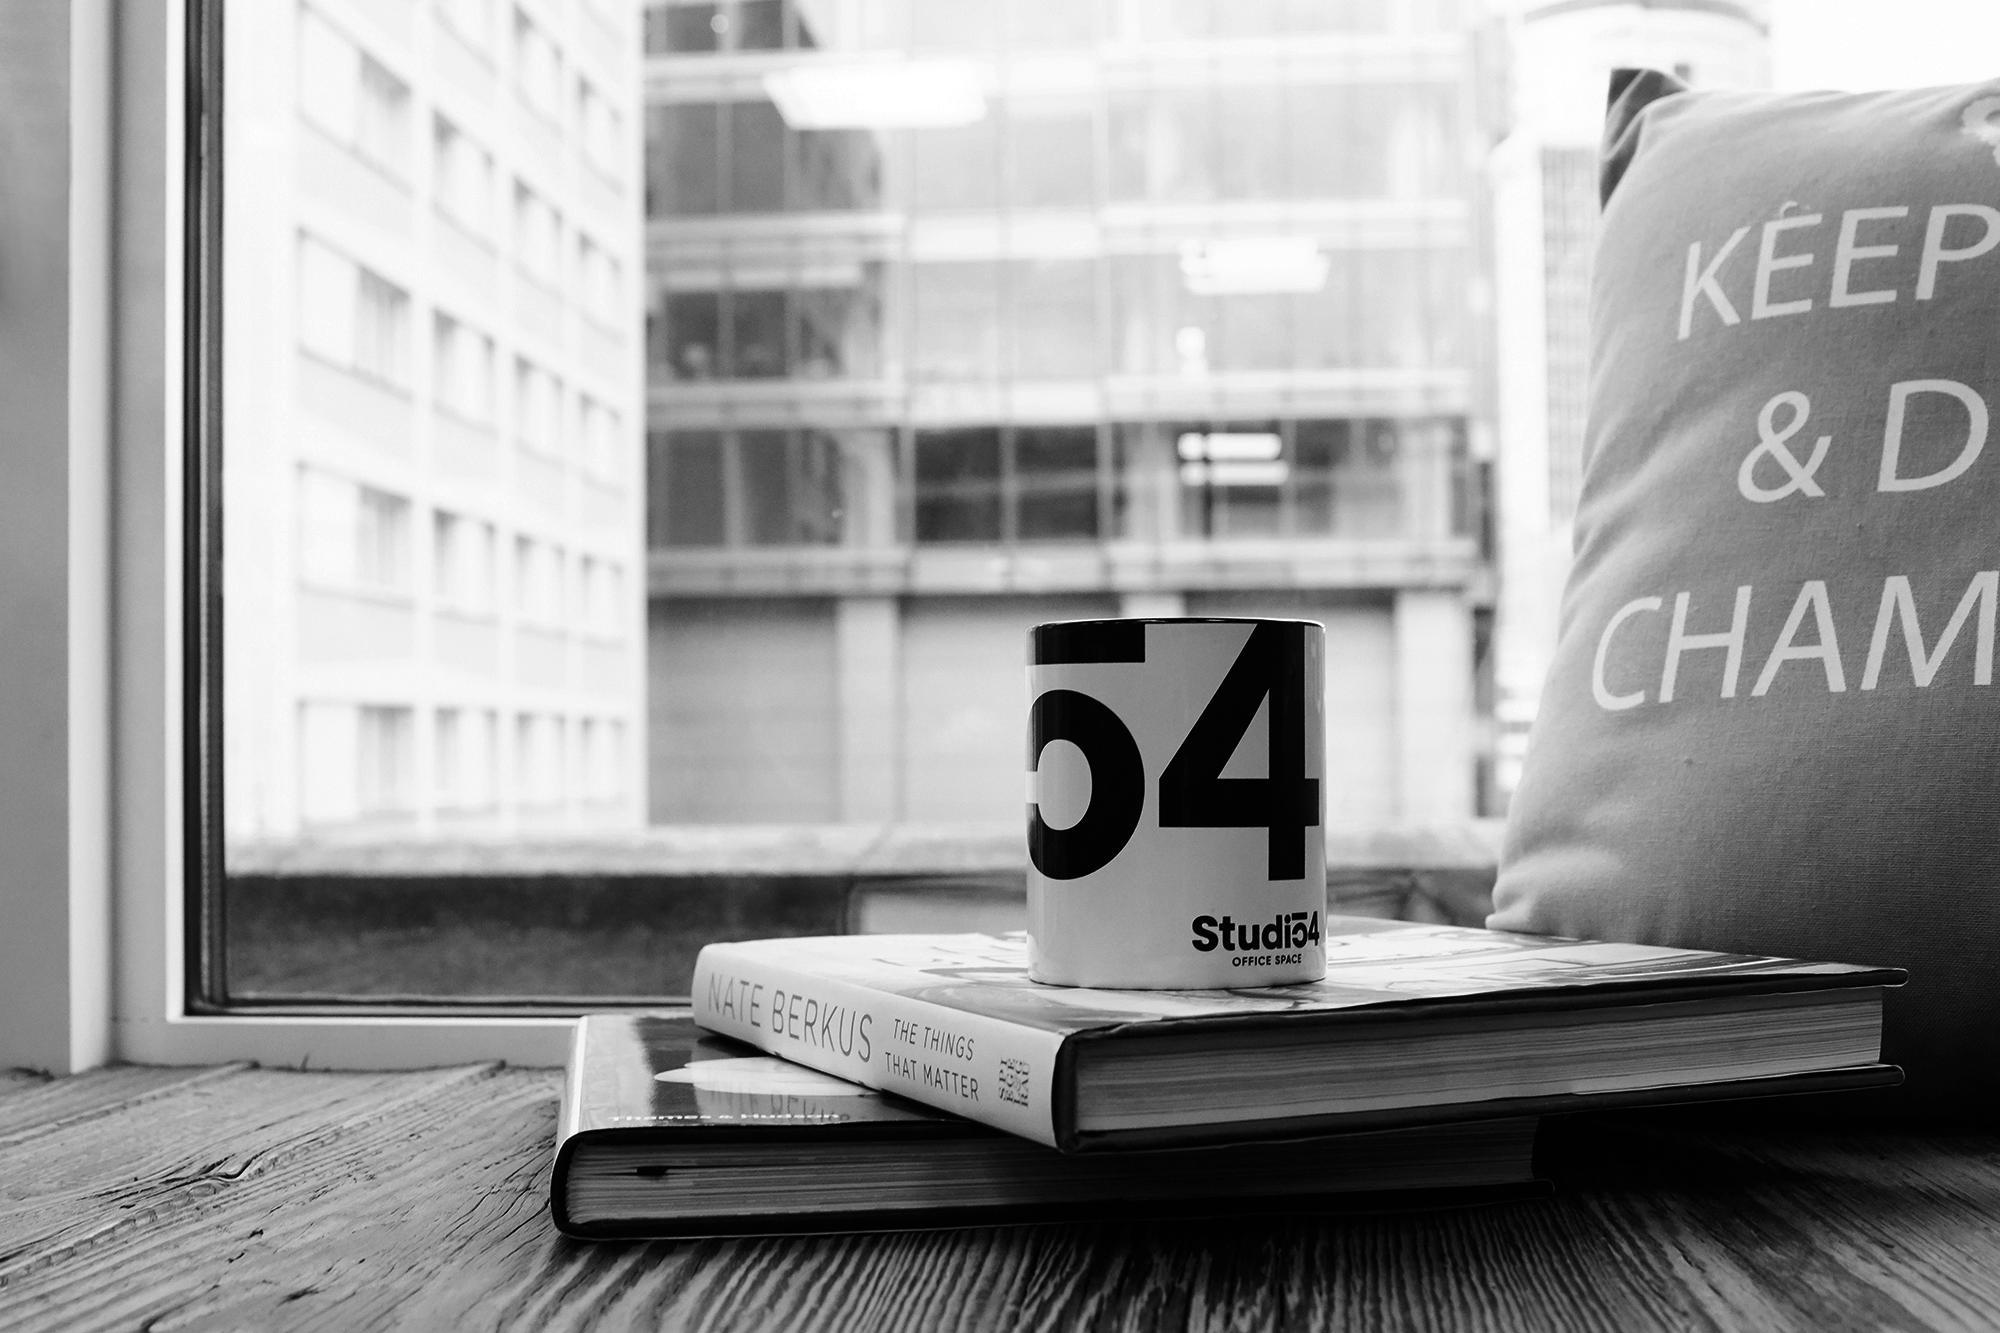 STUDIO 54 - Coworking Space - Warsaw